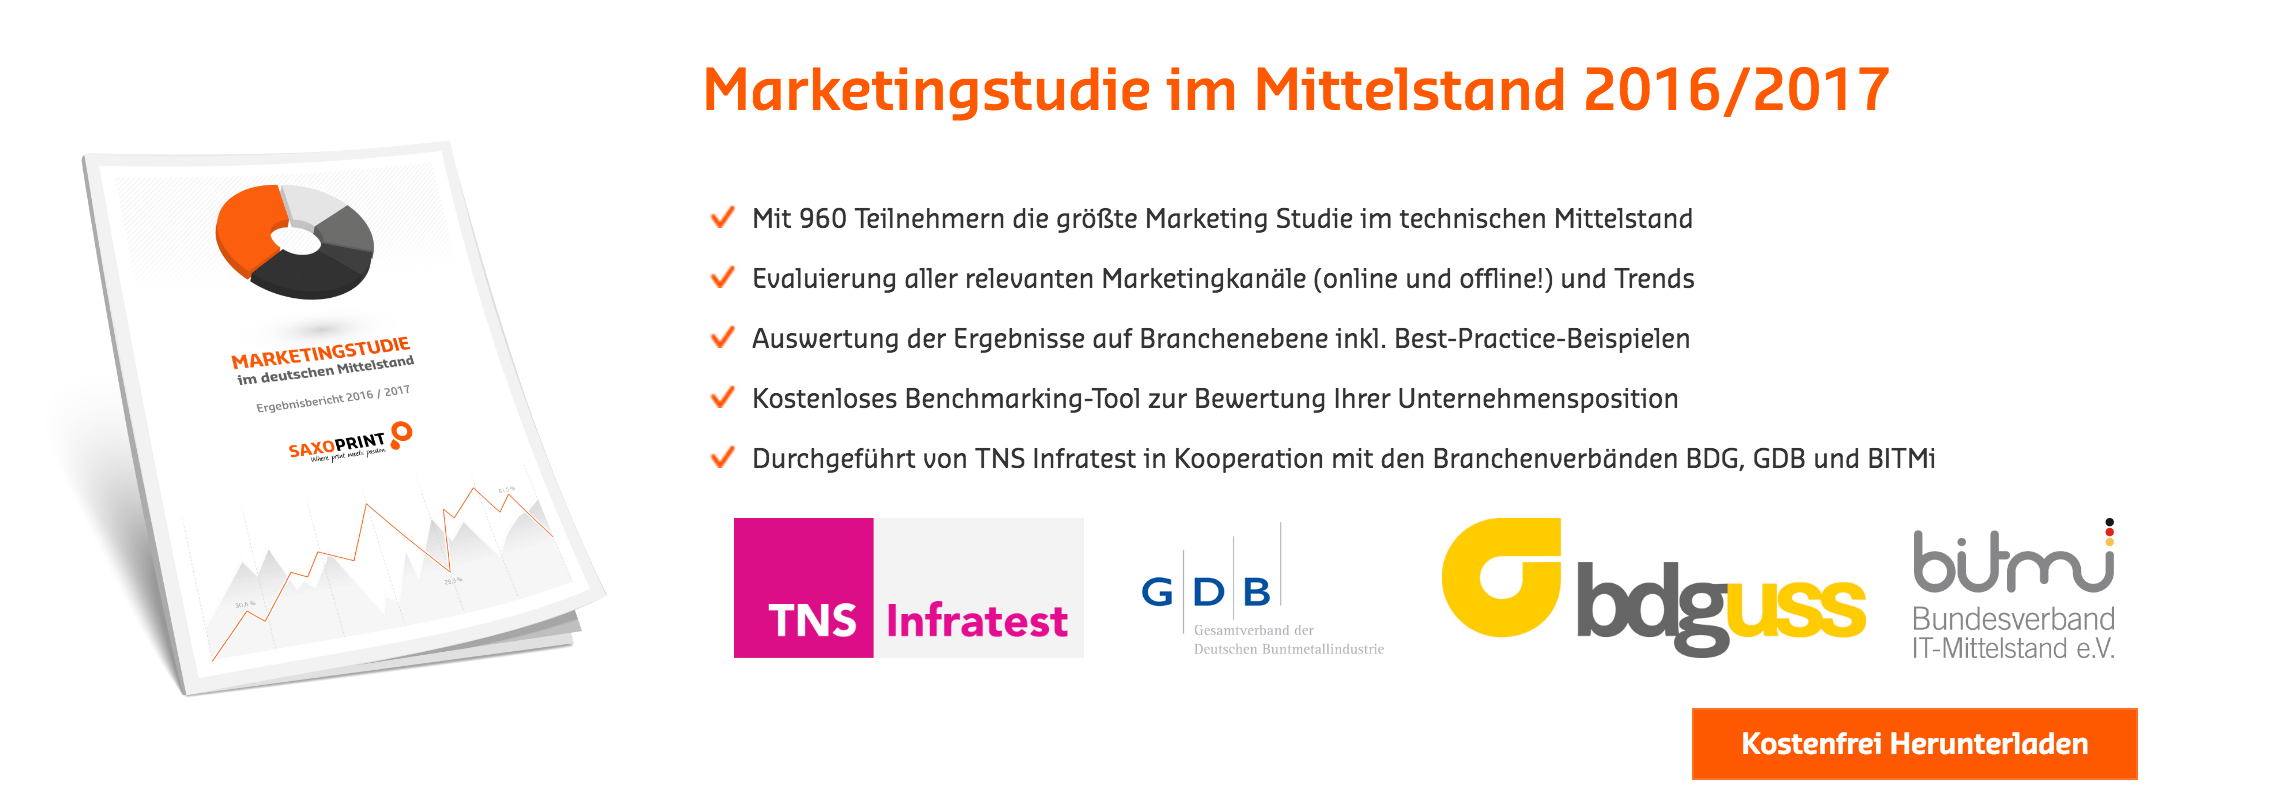 B2B Content Marketing Beispiel 1